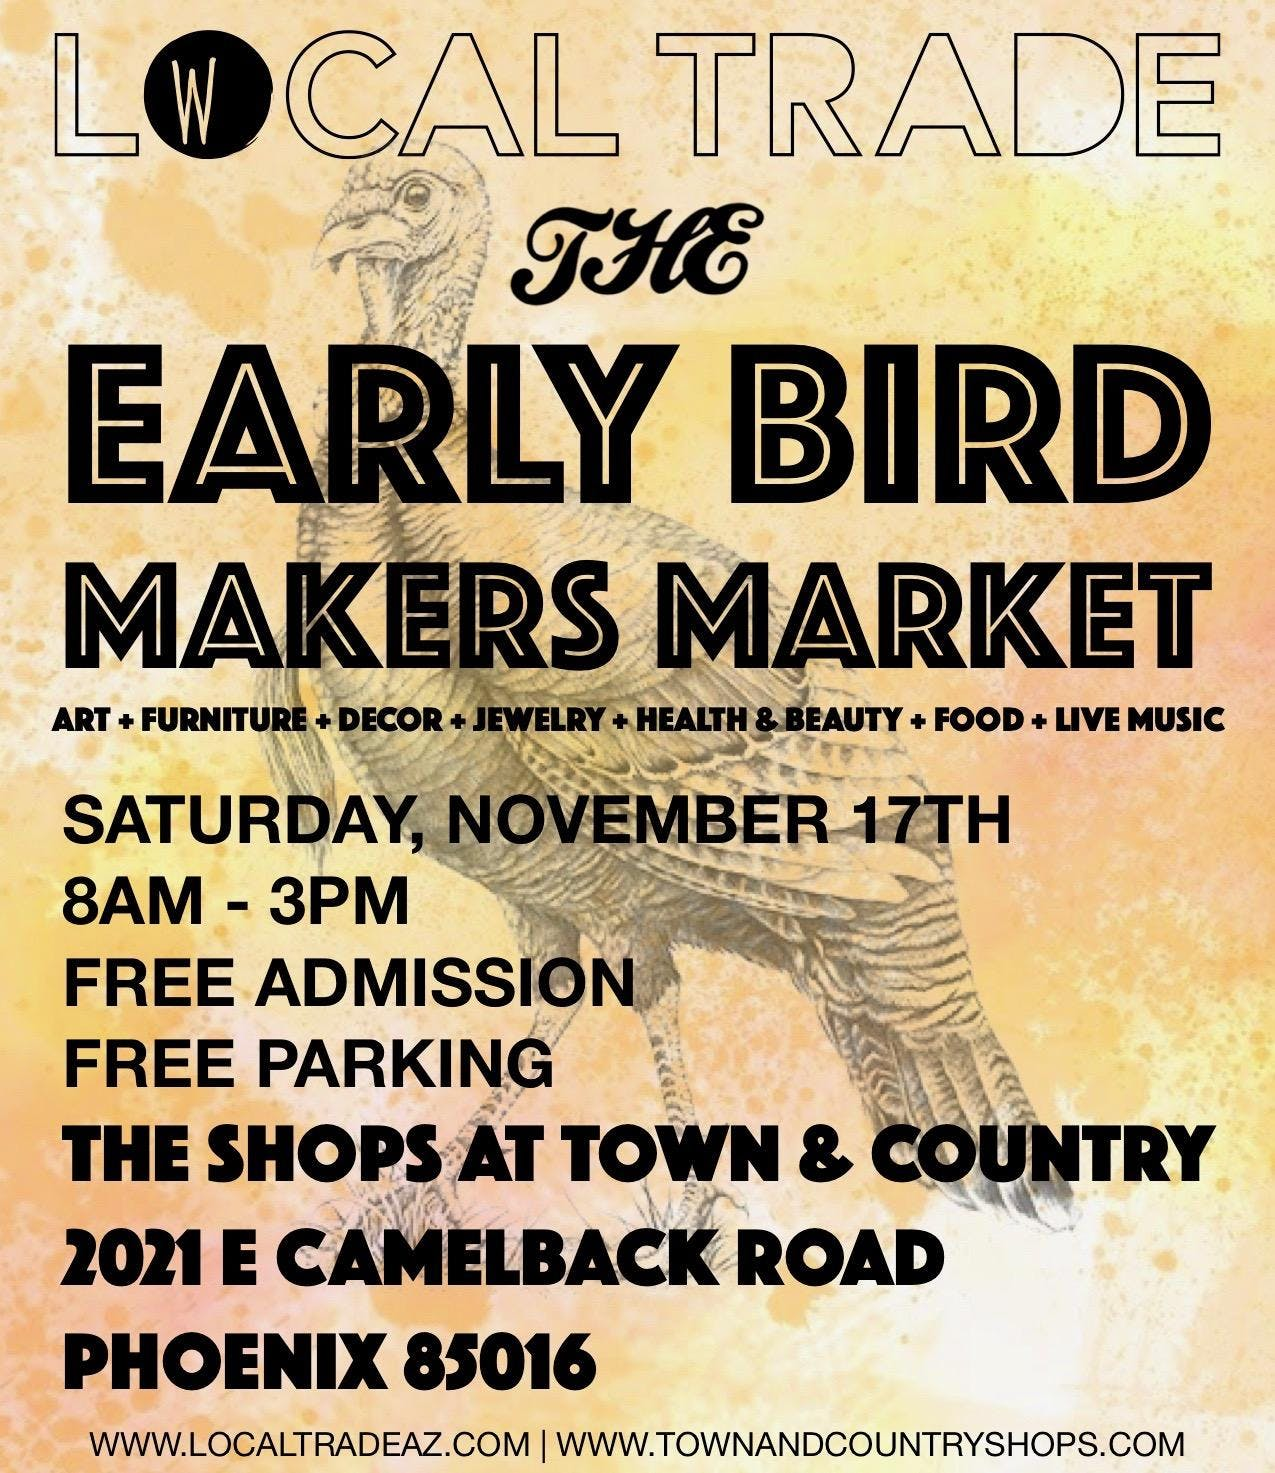 The Early Bird Makers Market